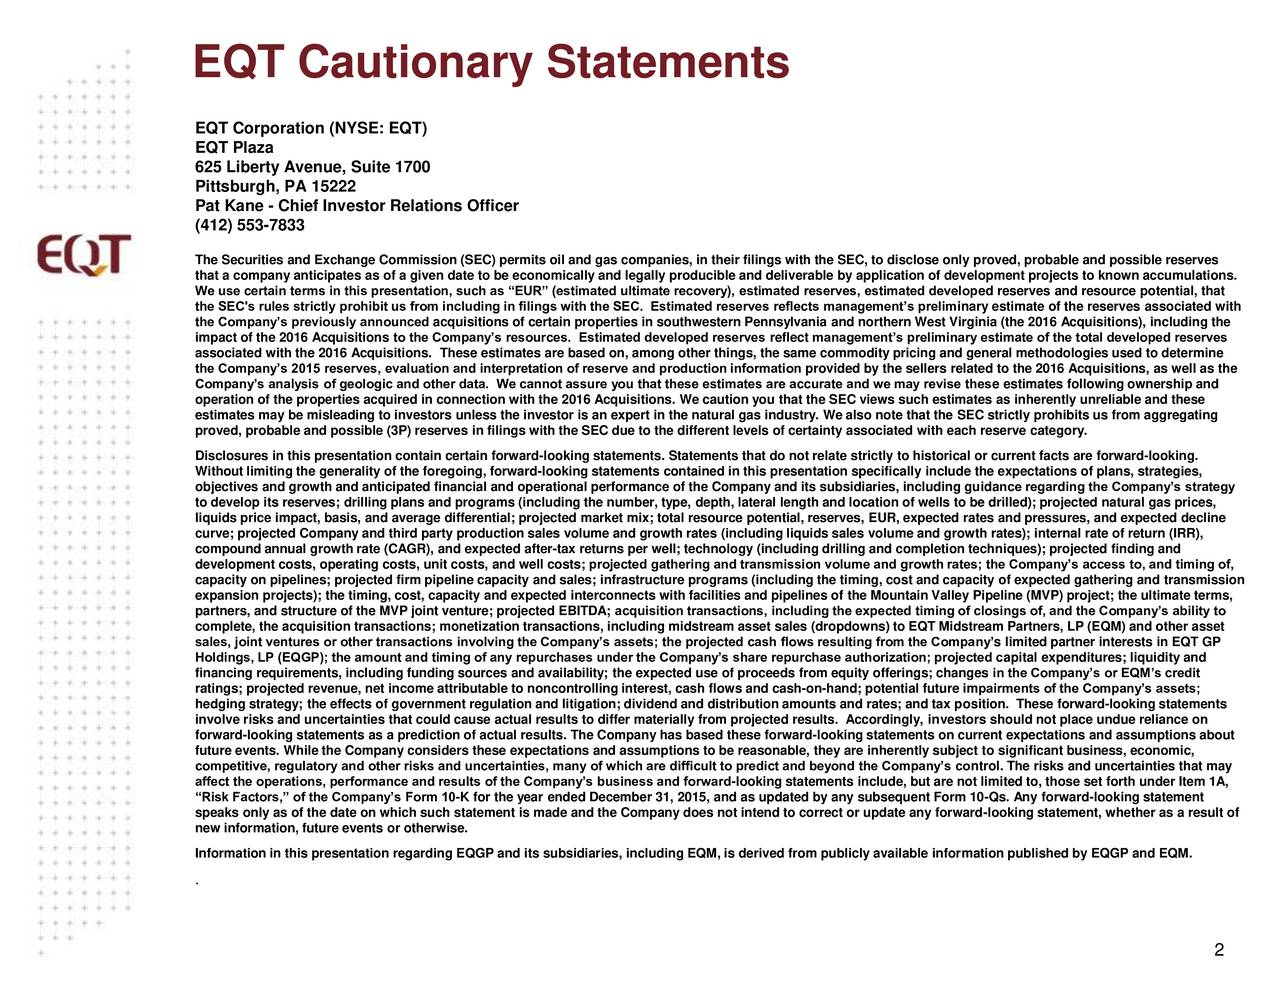 EQT Corporation (NYSE: EQT) EQT Plaza 625 Liberty Avenue, Suite 1700 Pittsburgh, PA 15222 Pat Kane - Chief Investor Relations Officer (412) 553-7833 The Securities and Exchange Commission (SEC) permits oil and gas companies, in their filings with the SEC, to disclose only proved, probable and possible reserves that a company anticipates as of a given date to be economically and legally producible and deliverable by application of development projects to known accumulations. We use certain terms in this presentation, such as EUR (estimated ultimate recovery), estimated reserves, estimated developed reserves and resource potential, that the SEC's rules strictly prohibit us from including in filings with the SEC. Estimated reserves reflects managements preliminary estimate of the reserves associated with the Companys previously announced acquisitions of certain properties in southwestern Pennsylvania and northern West Virginia (the 2016 Acquisitions), including the impact of the 2016 Acquisitions to the Companys resources. Estimated developed reserves reflect managements preliminary estimate of the total developed reserves associated with the 2016 Acquisitions. These estimates are based on, among other things, the same commodity pricing and general methodologies used to determine the Companys 2015 reserves, evaluation and interpretation of reserve and production information provided by the sellers related to the 2016 Acquisitions, as well as the Companys analysis of geologic and other data. We cannot assure you that these estimates are accurate and we may revise these estimates following ownership and operation of the properties acquired in connection with the 2016 Acquisitions. We caution you that the SEC views such estimates as inherently unreliable and these estimates may be misleading to investors unless the investor is an expert in the natural gas industry. We also note that the SEC strictly prohibits us from aggregating proved, probable and possible (3P) reserves